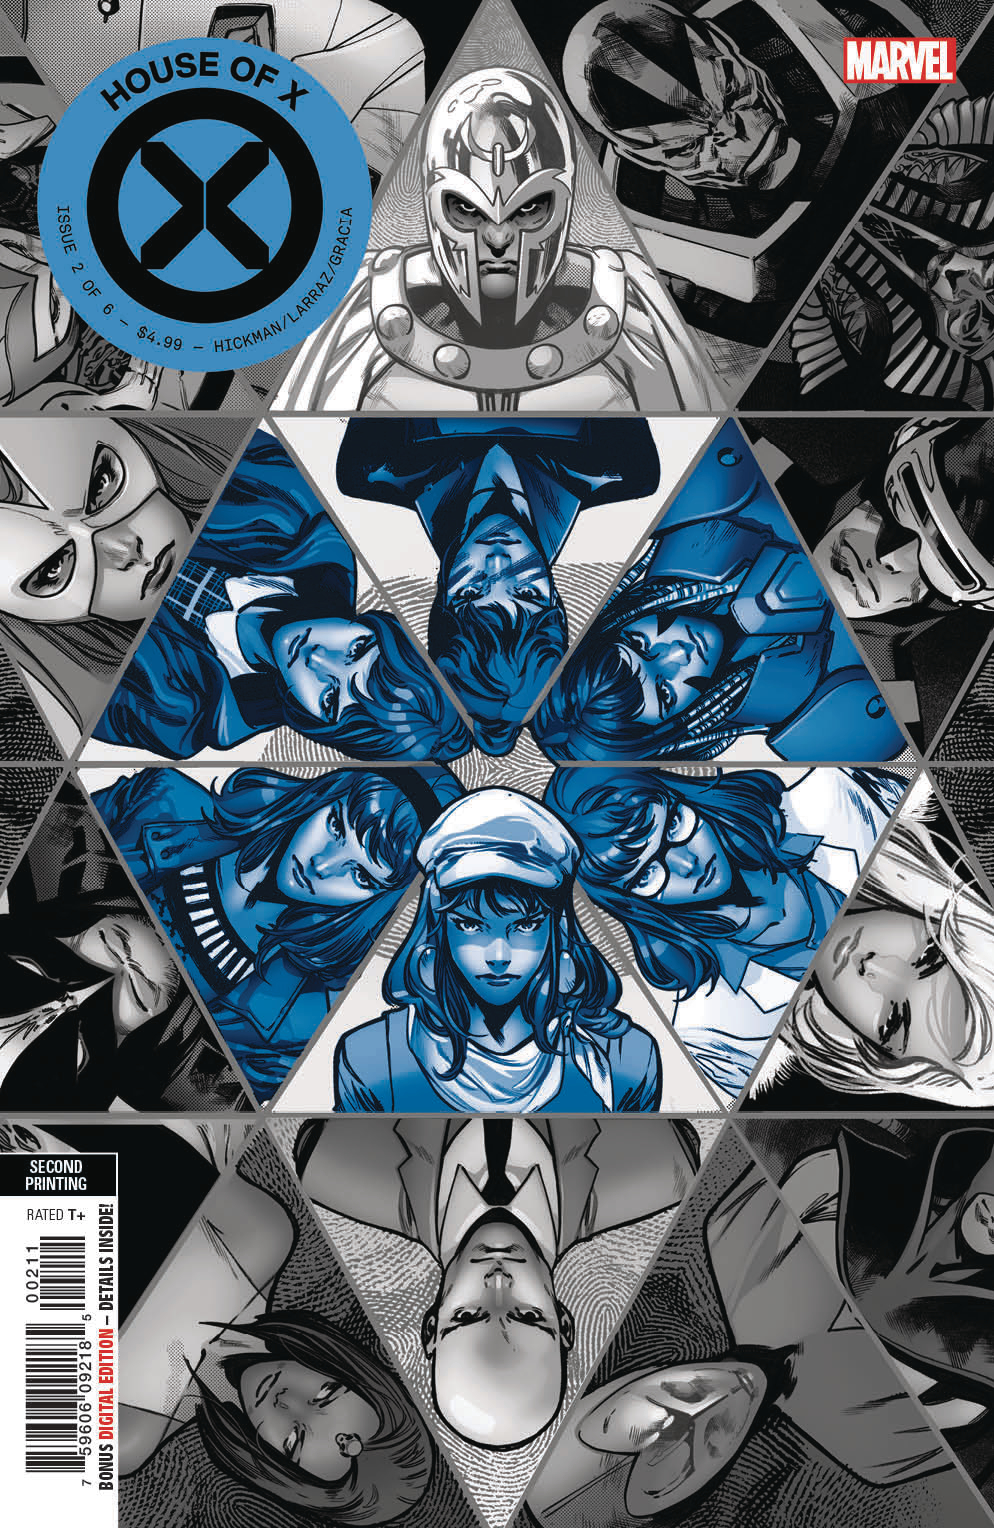 House of X Vol 1 2 Second Printing Variant.jpg